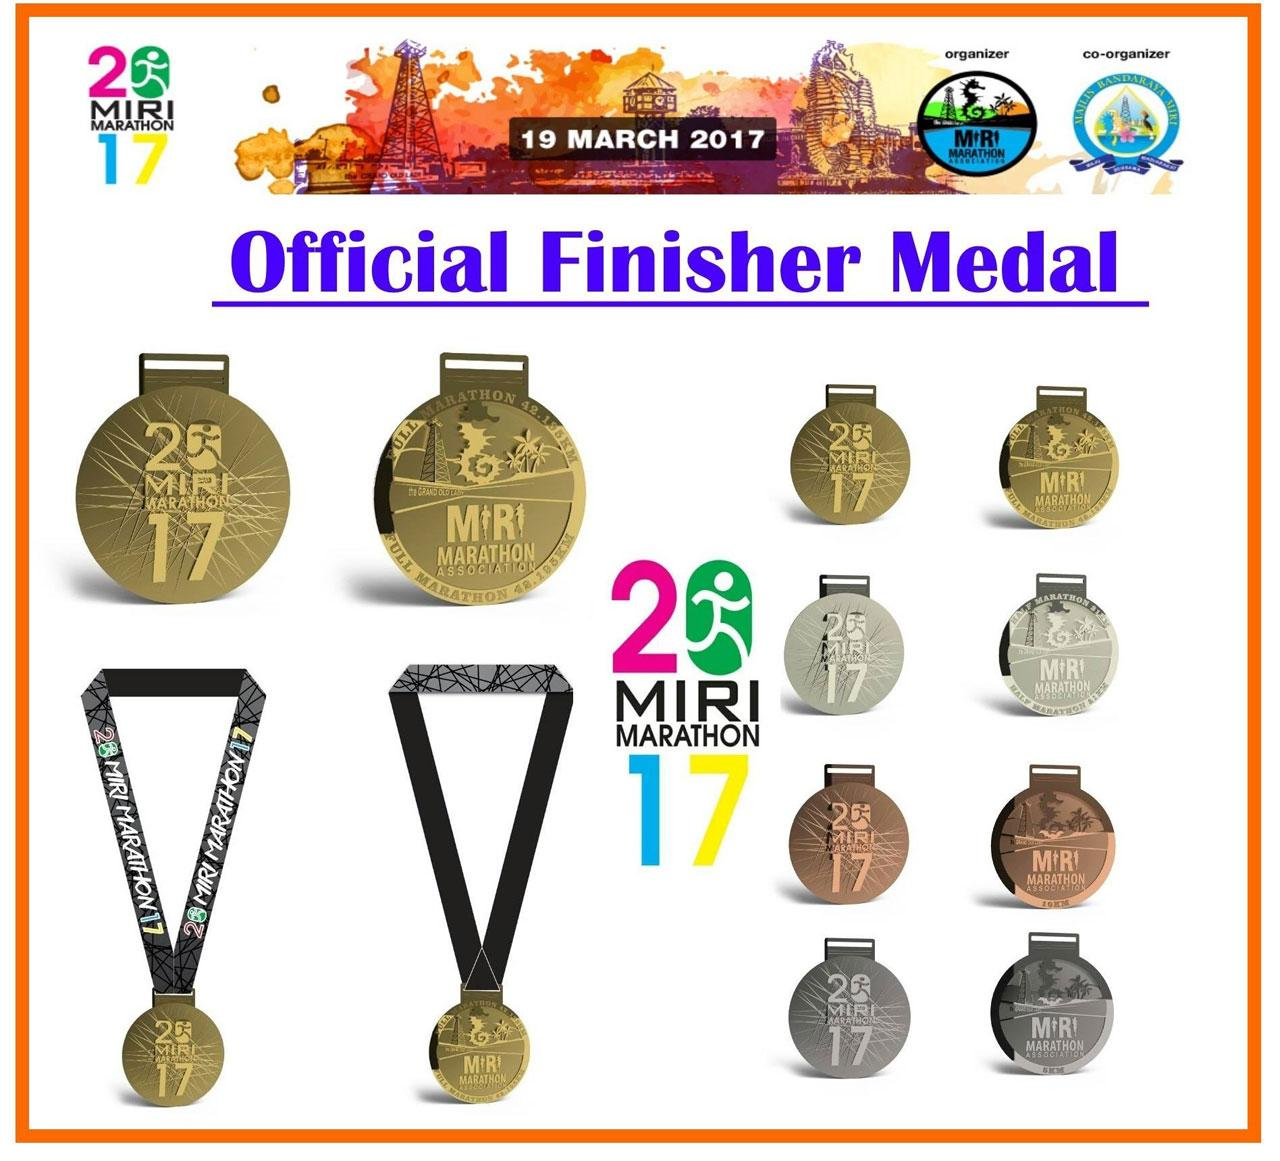 miri-marathon-finisher-medals.jpg